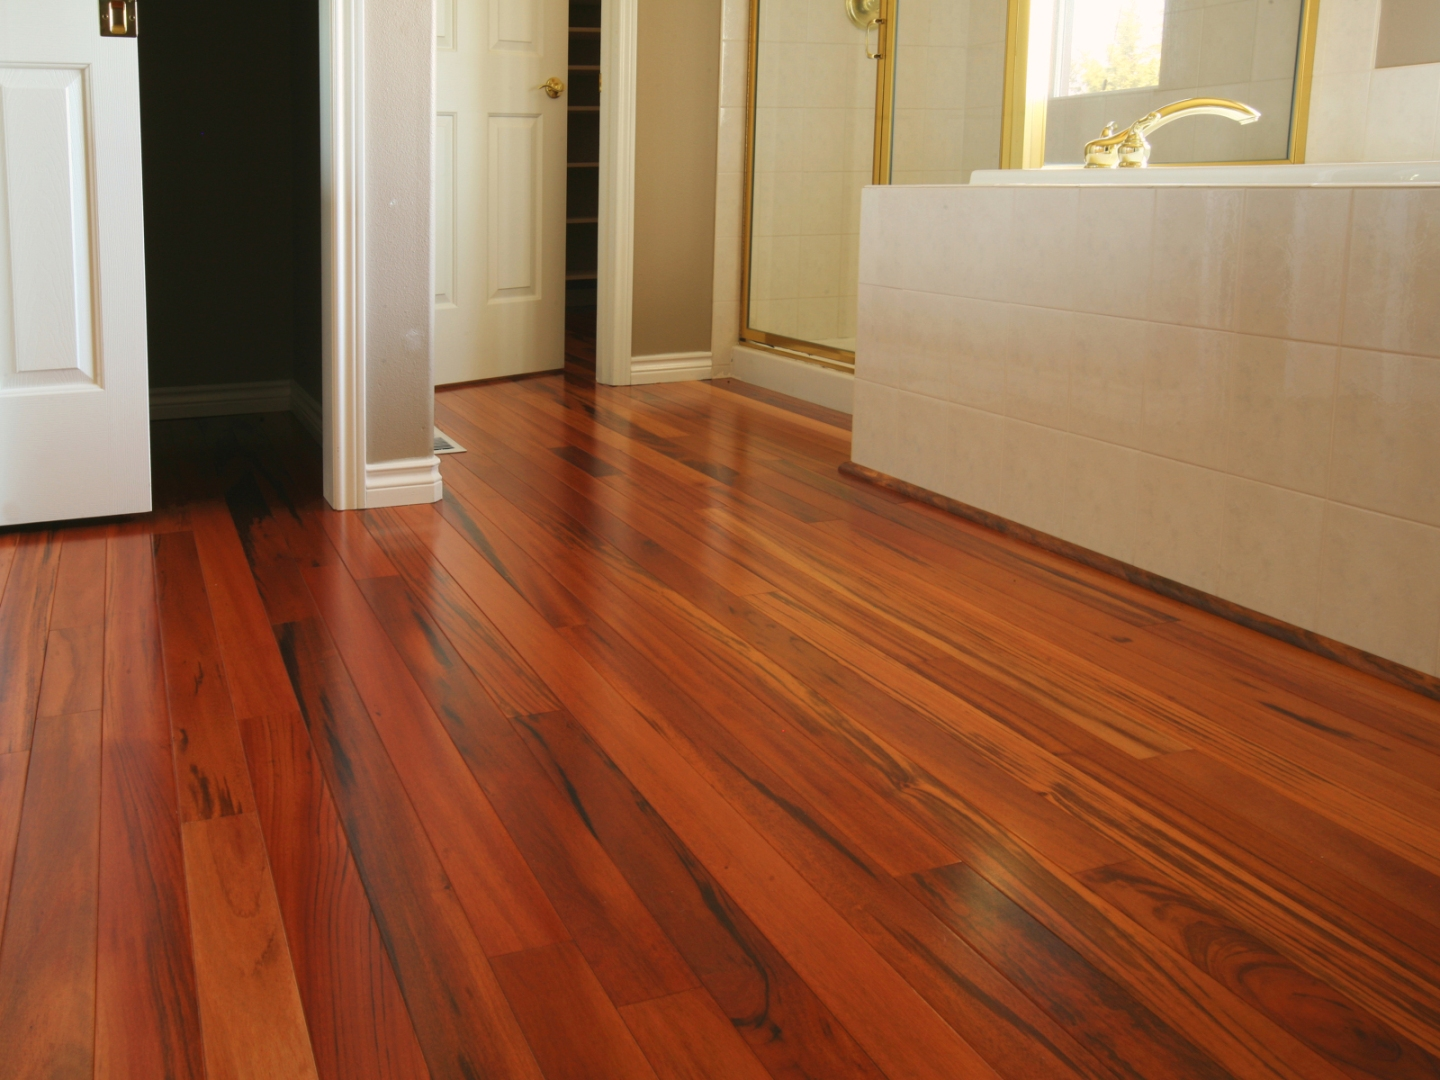 this is actually the best way to clean hardwood floors dreams house furniture. Black Bedroom Furniture Sets. Home Design Ideas